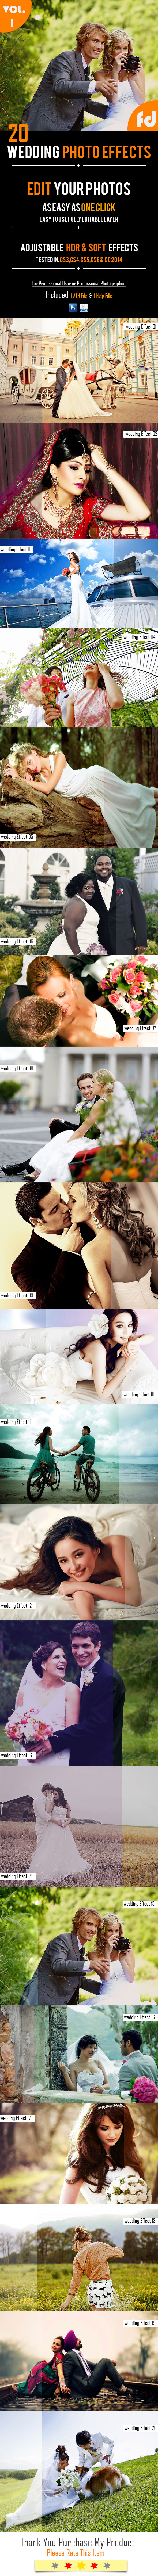 20 Wedding Photo Effects - Photo Effects Actions